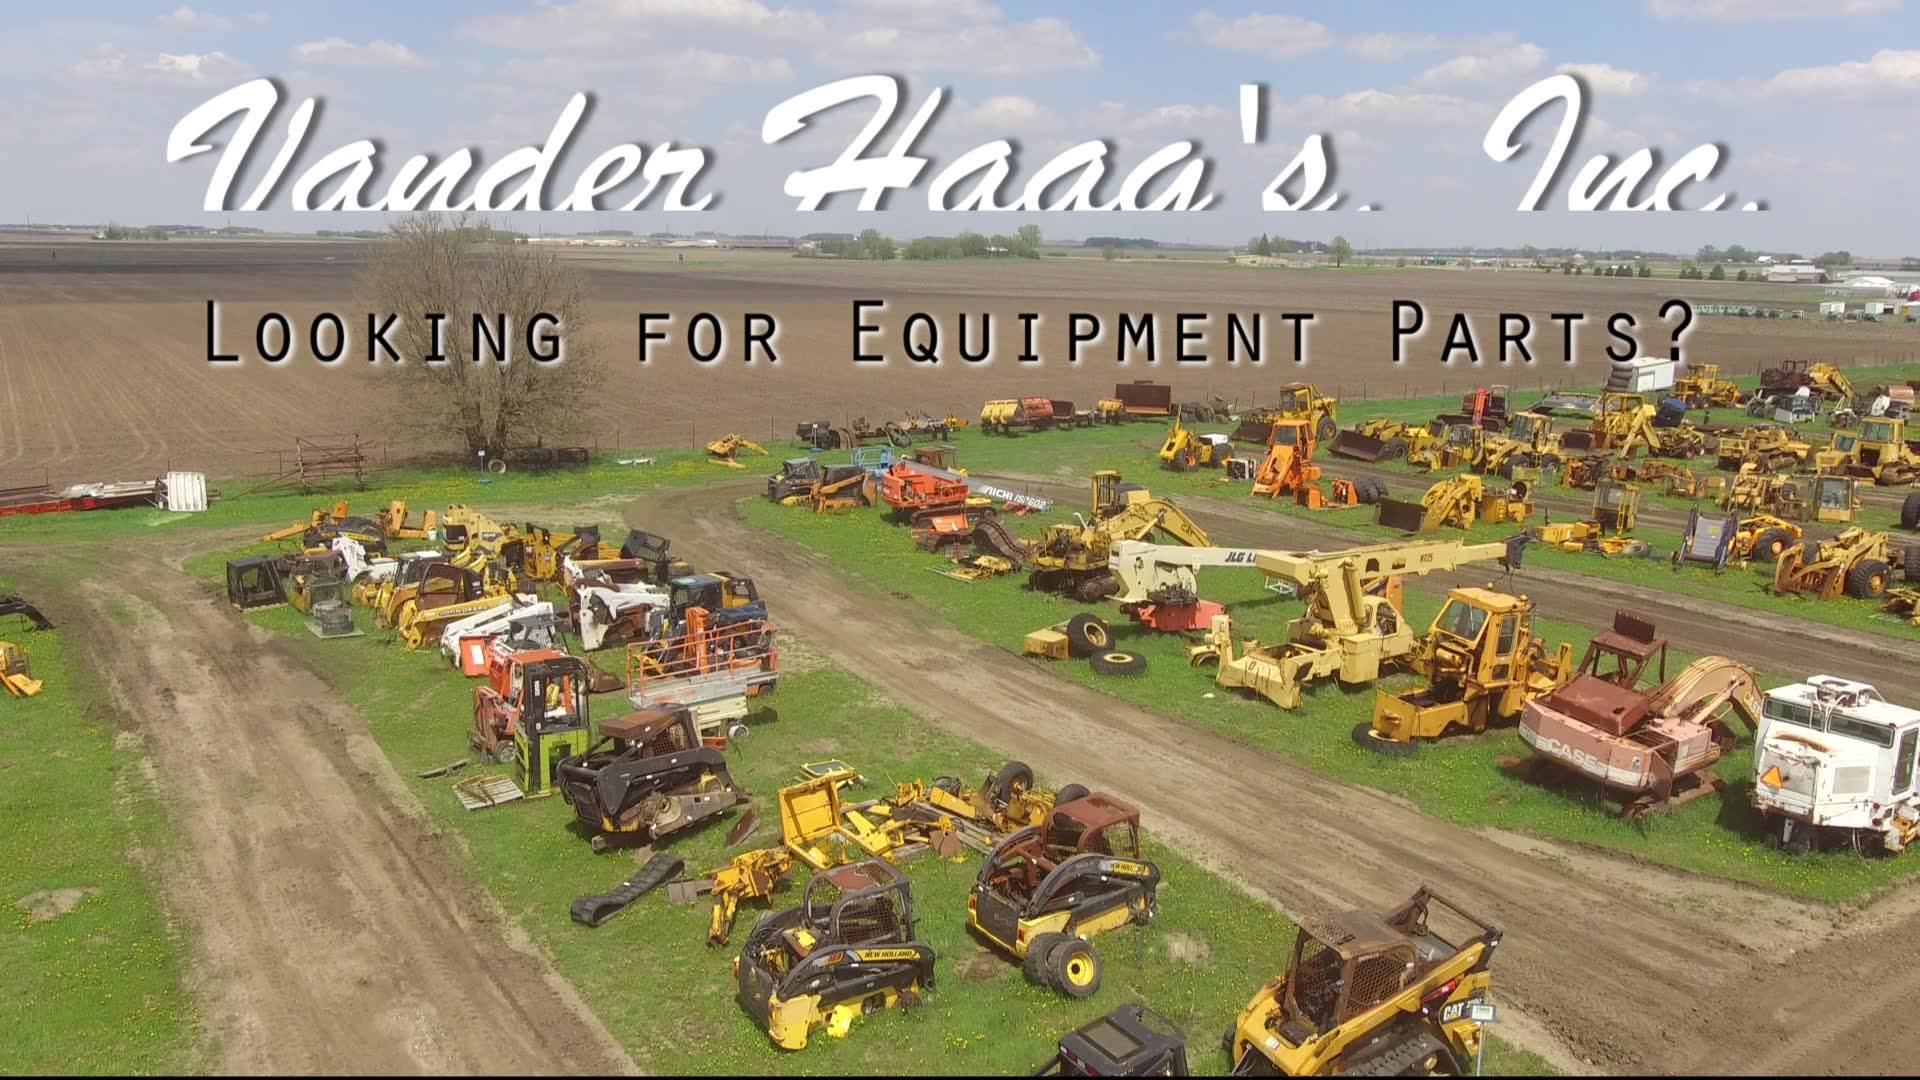 Vander Haag's, Inc. Equipment Parts